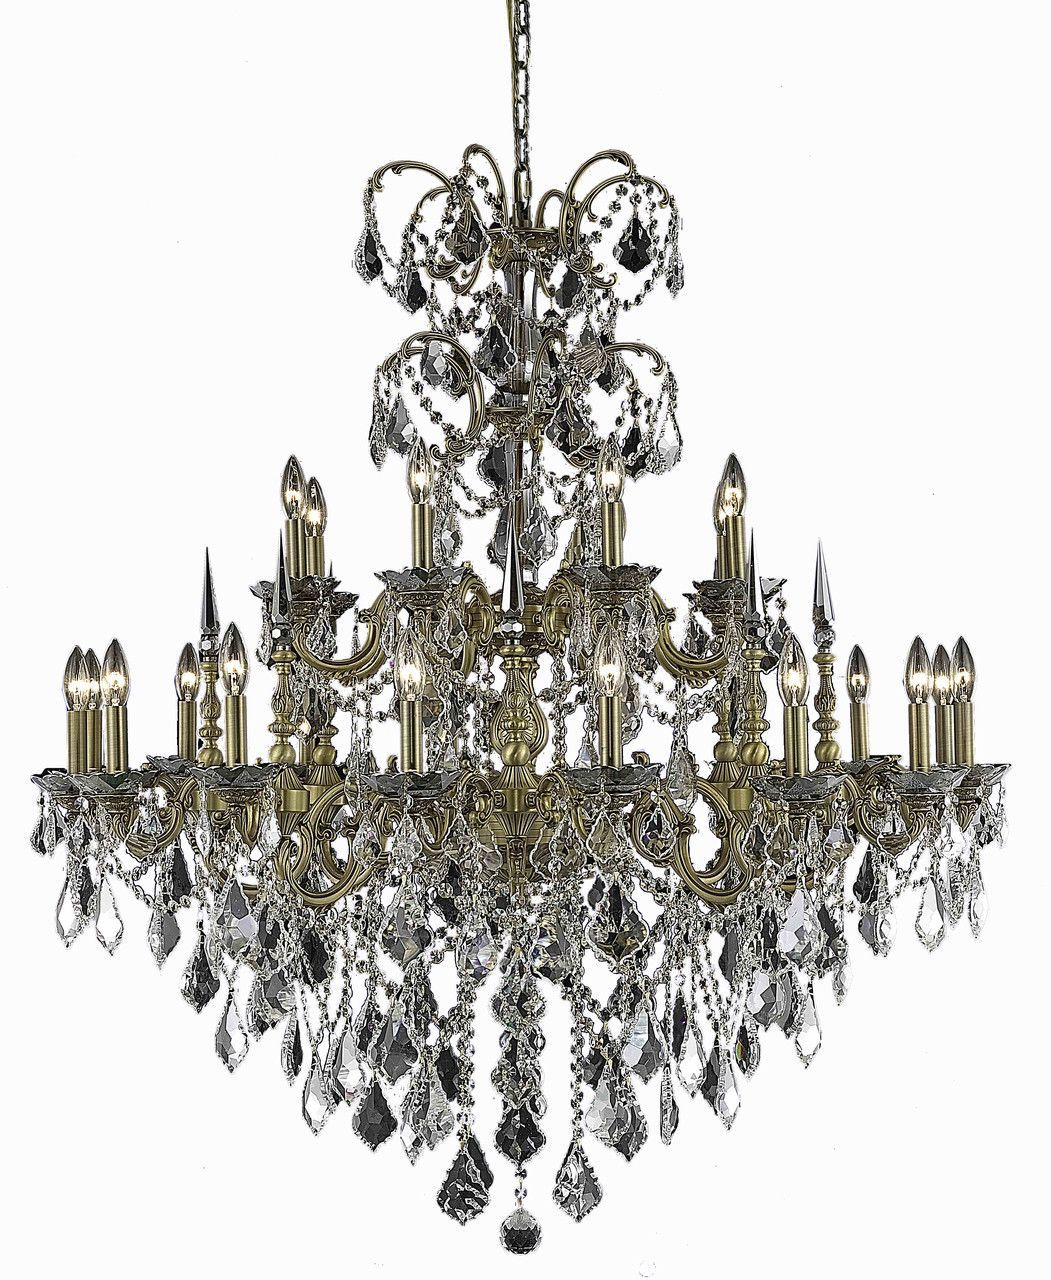 Athena 24 light crystal clear chandelier in french gold finish athena 24 light crystal clear chandelier in french gold finish 9724g44fgec aloadofball Images